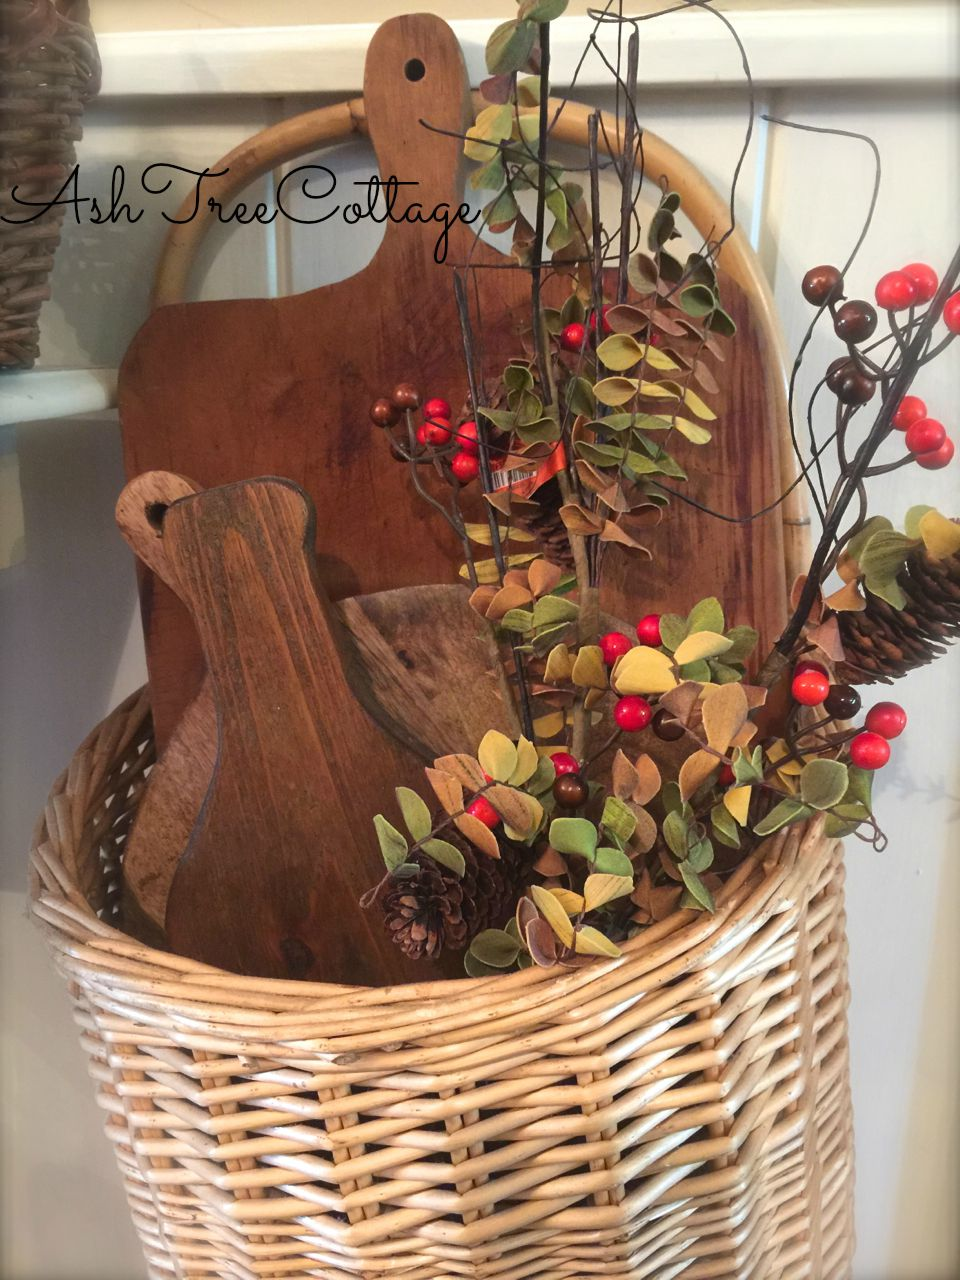 Ash Tree Cottage Decorating Baskets for Fall